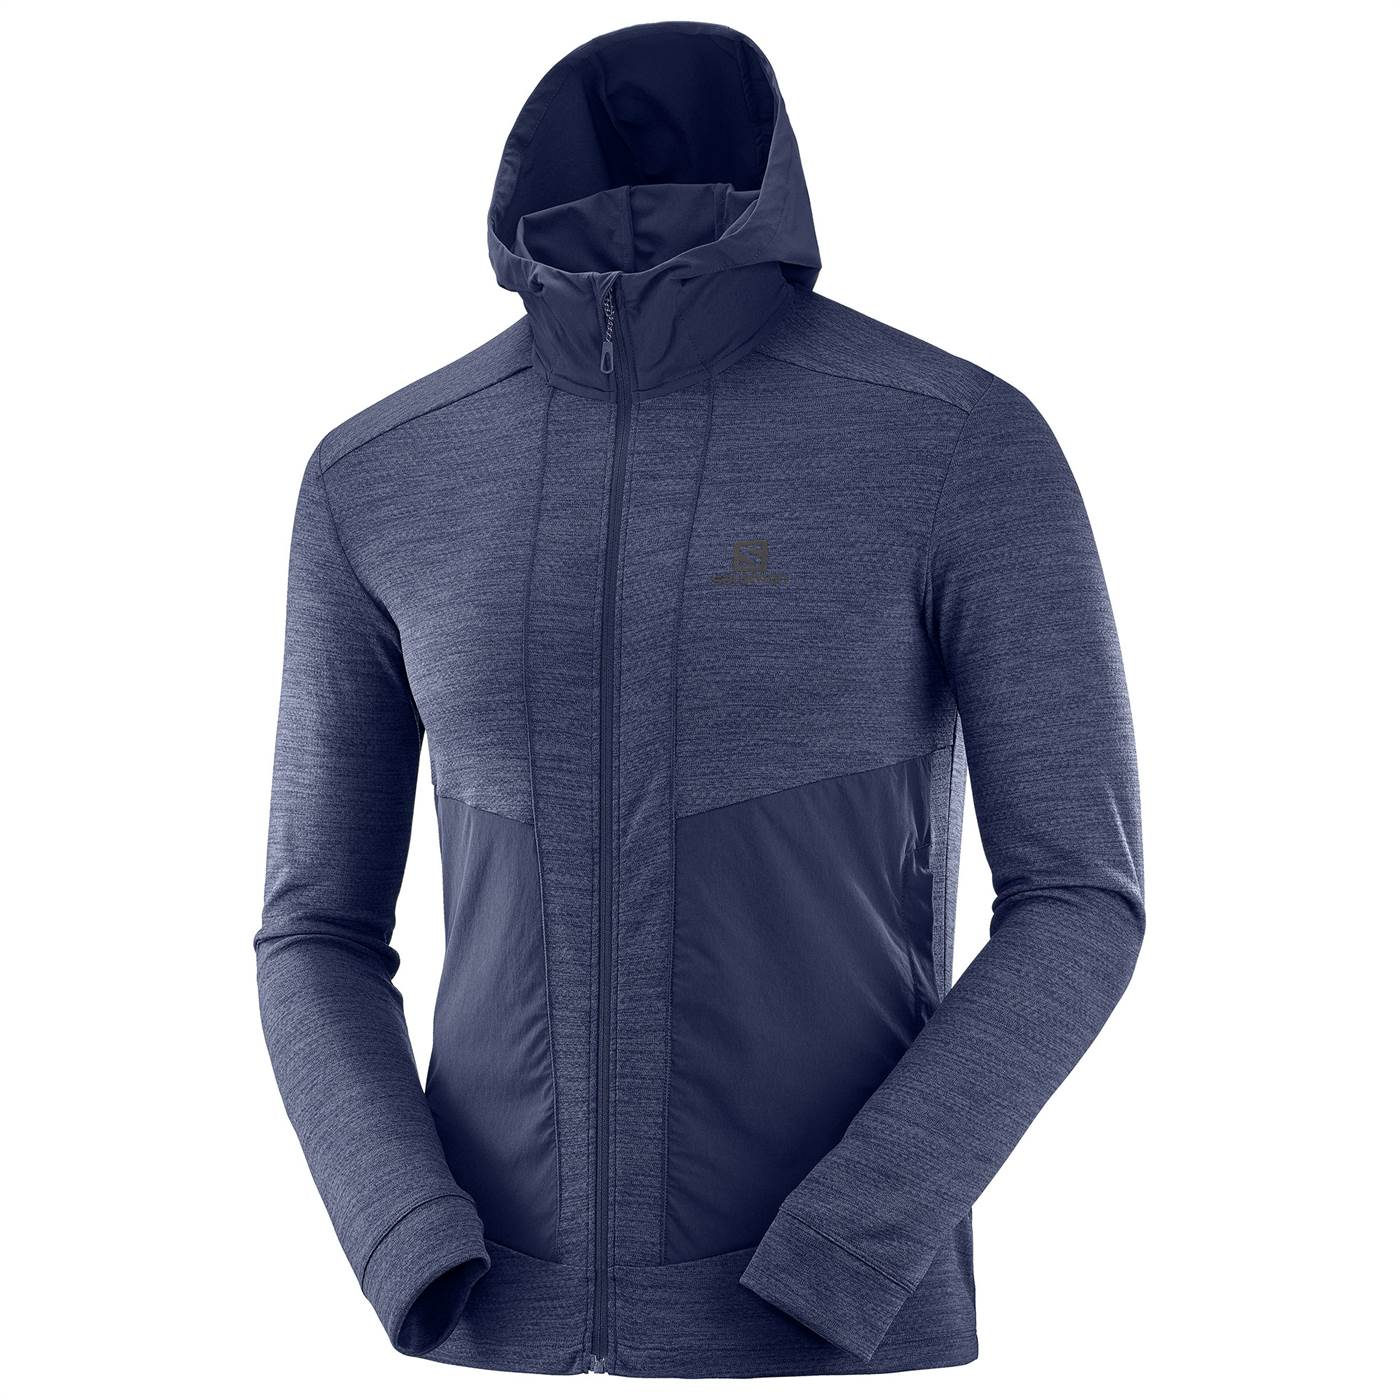 Outline Mid Jacket Night Sky Heather- Men's